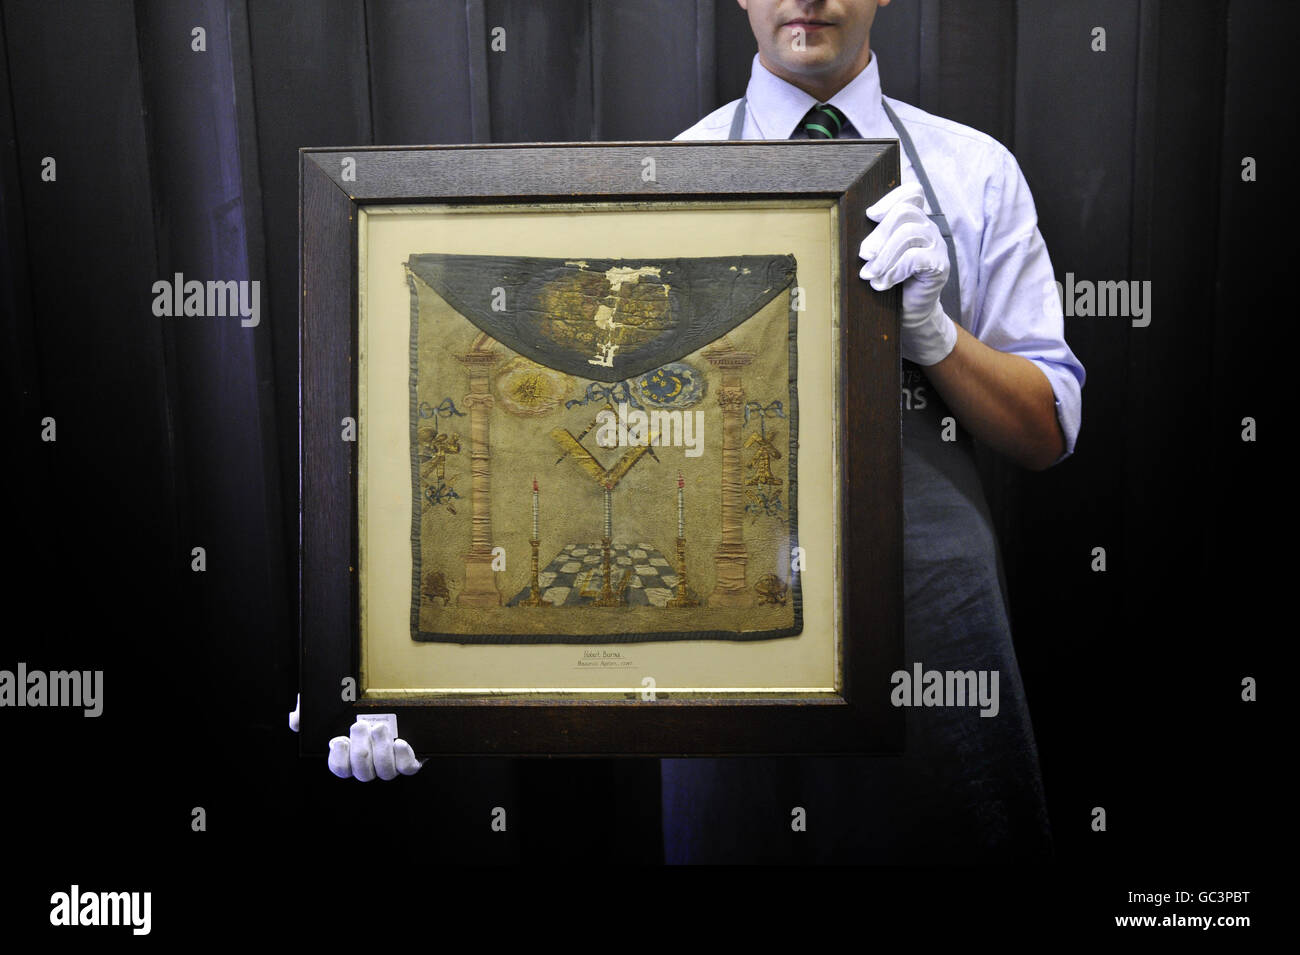 Masonic Apron Stock Photos & Masonic Apron Stock Images - Alamy